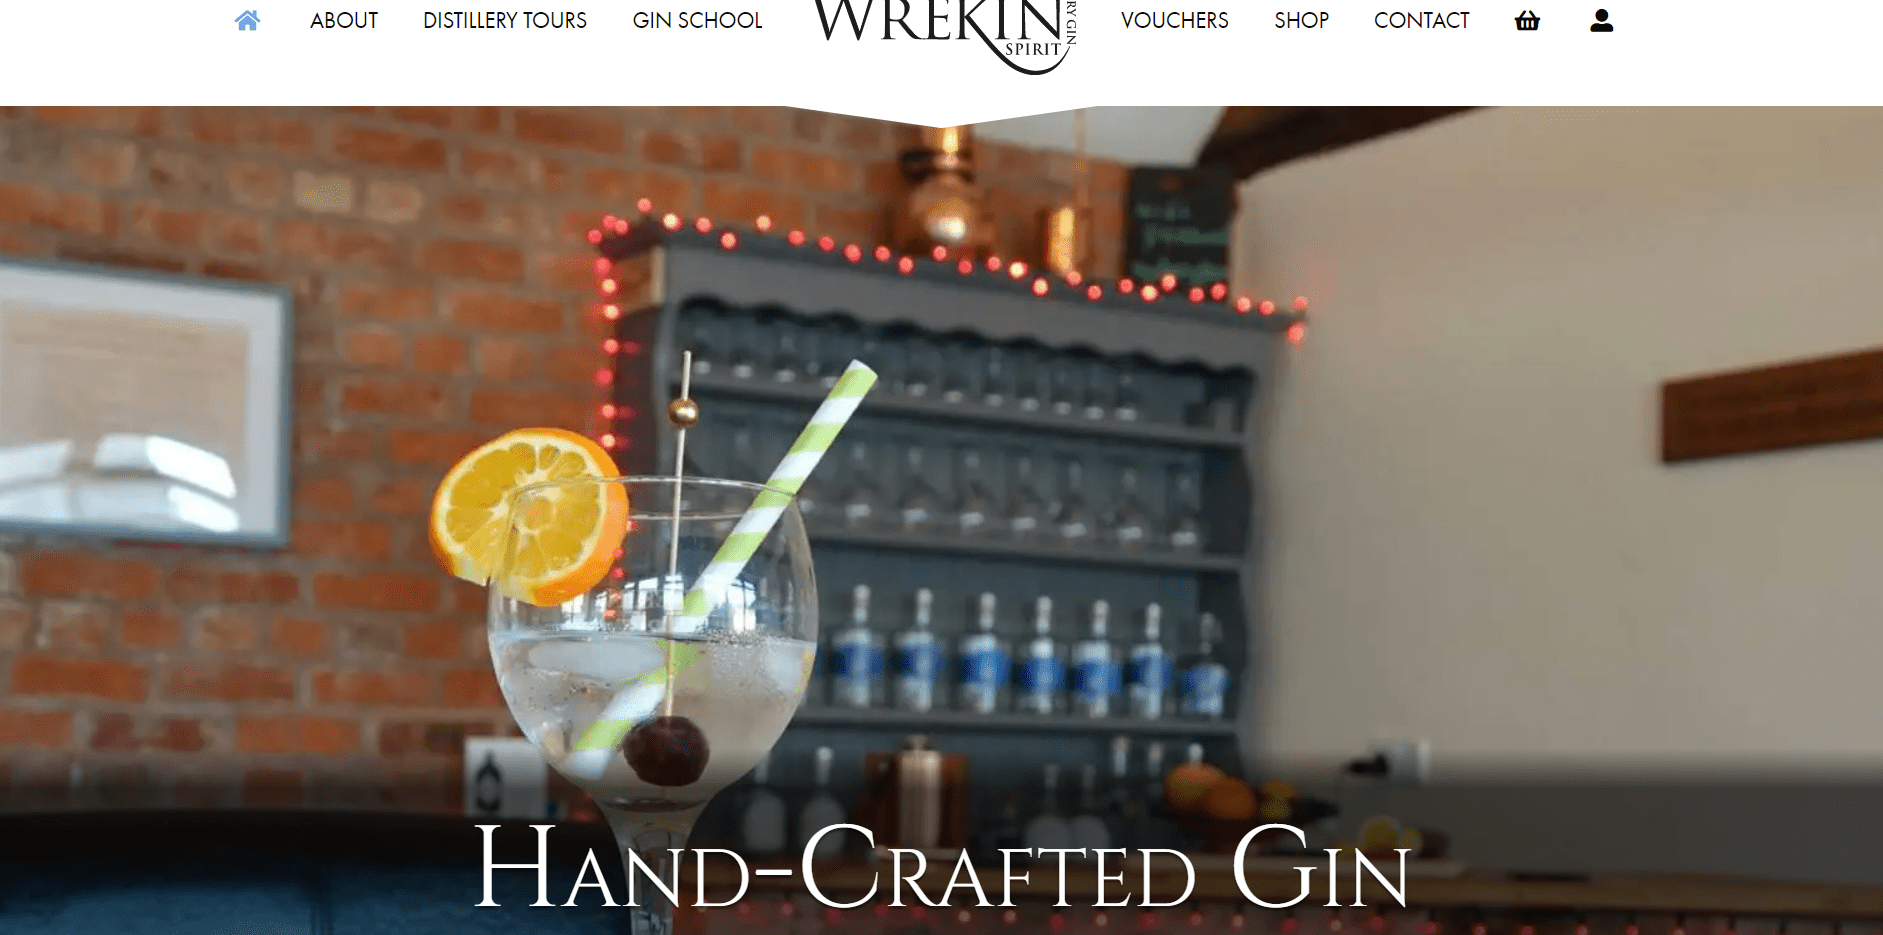 Wrekin Spirit, a Shropshire based Gin distillery, launch exciting new website to sell their new hand-crafted gin and distillery tours